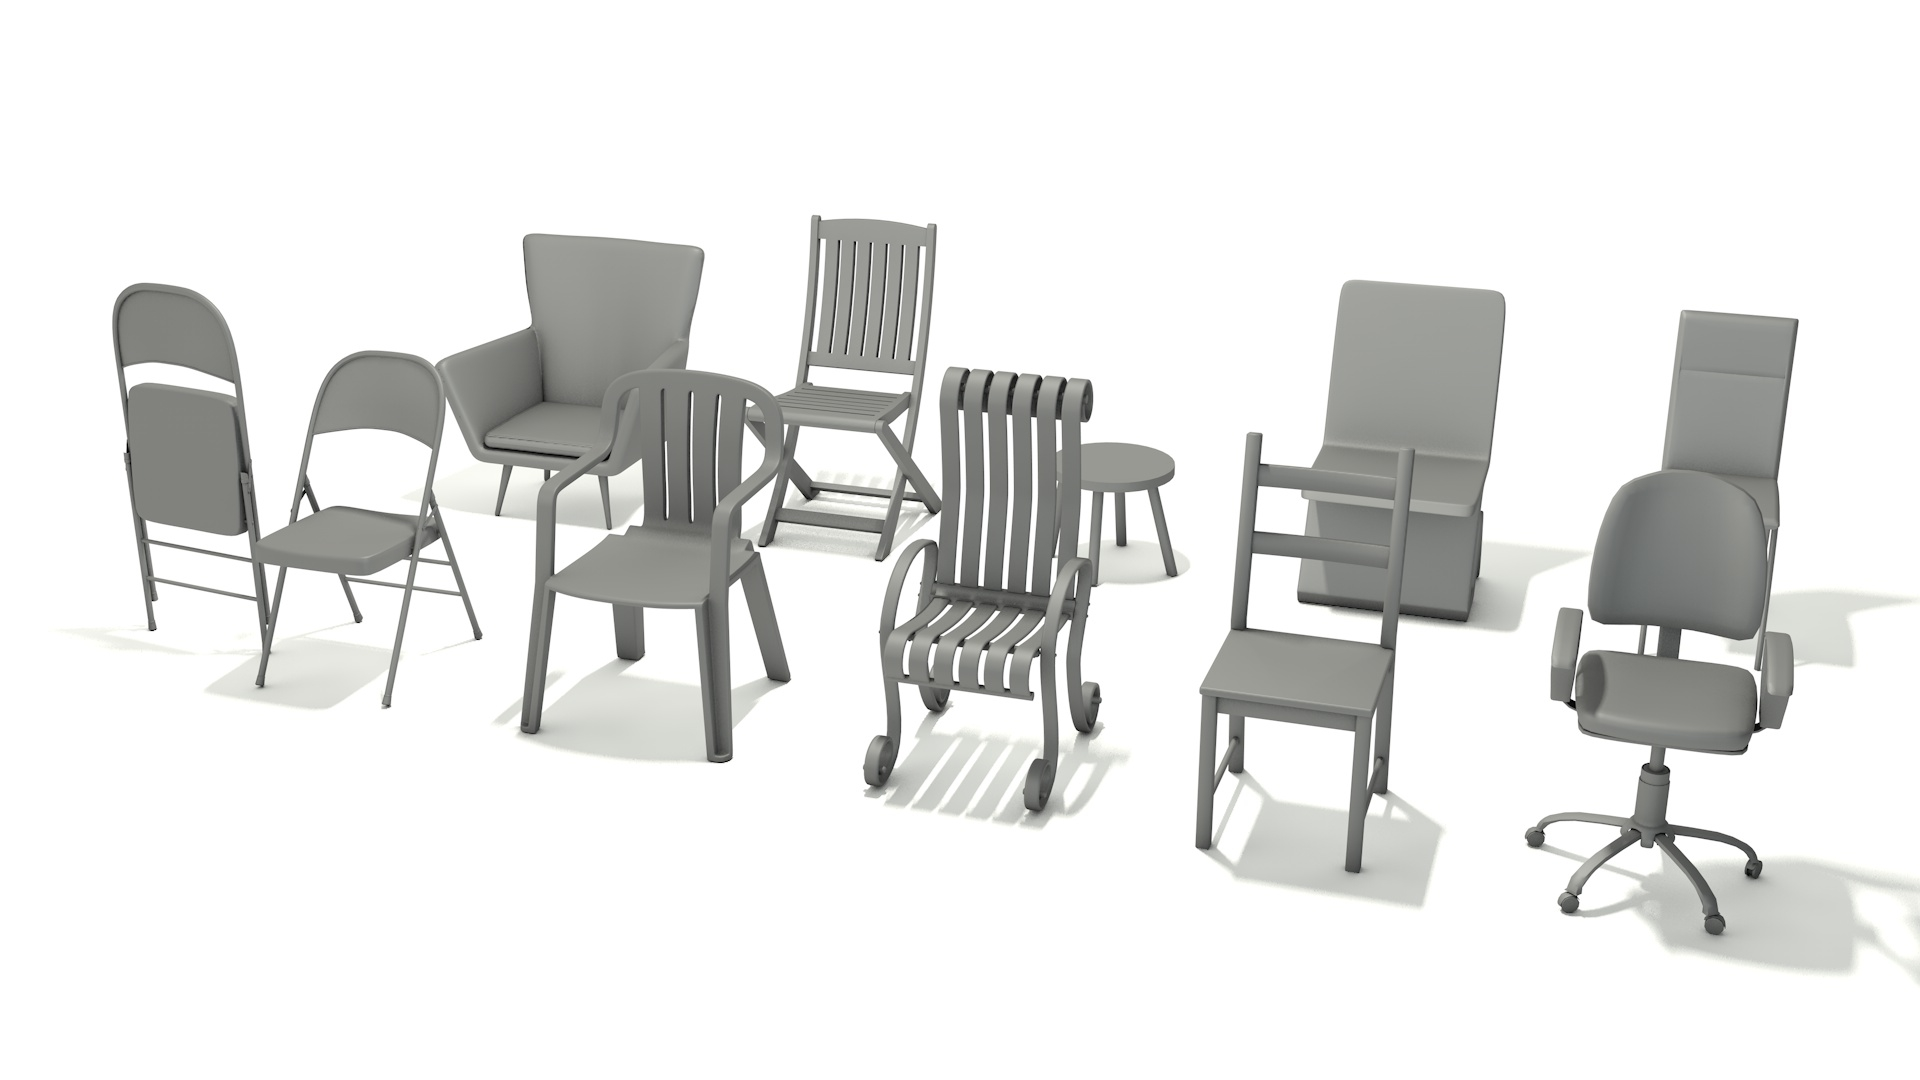 10 different style chair 3D model